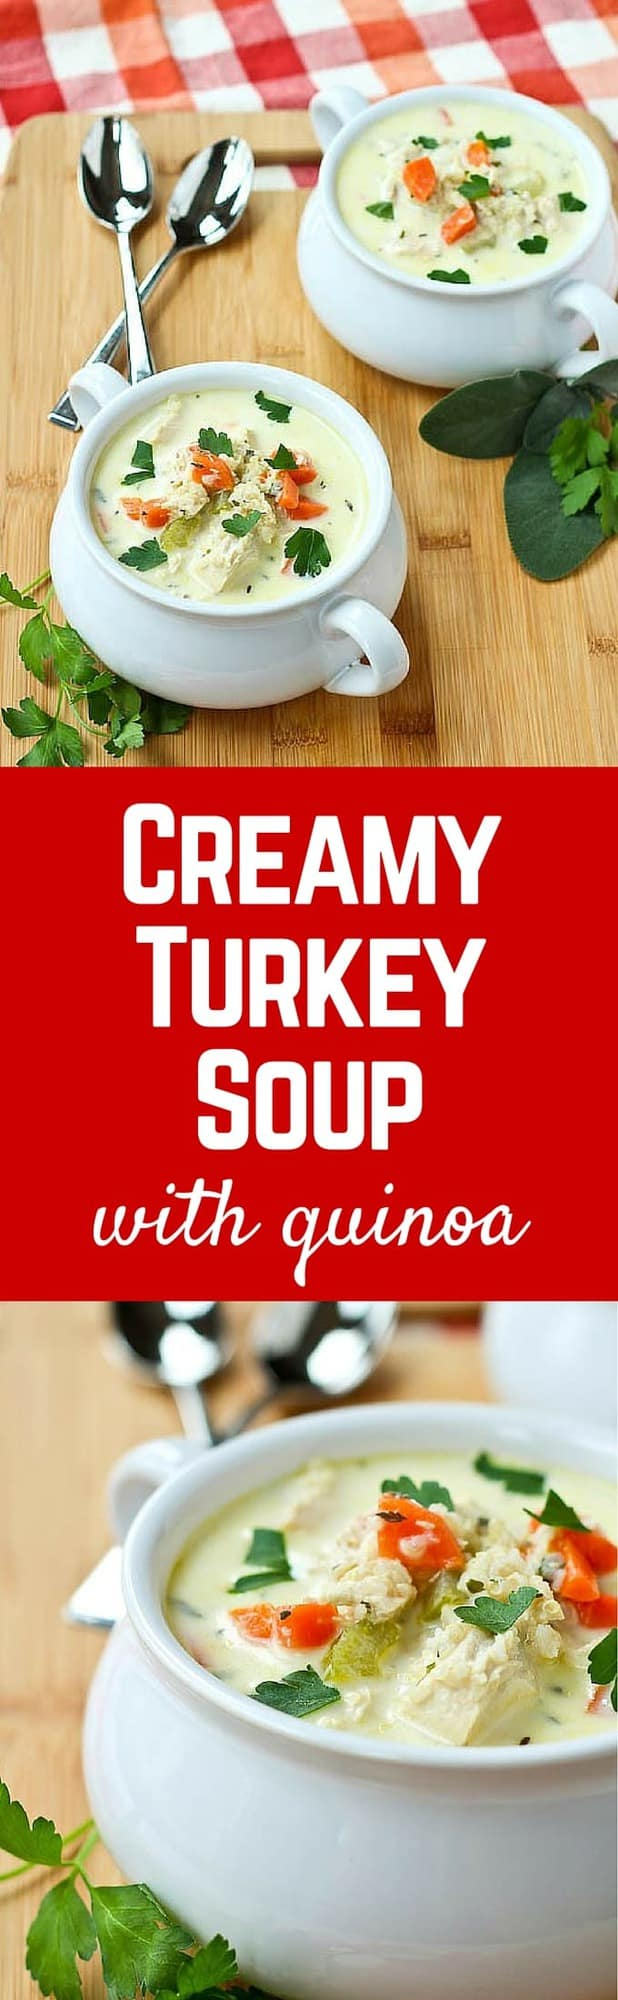 This Creamy Turkey Soup with Quinoa is easy to make and is a healthy and hearty way to repurpose leftover turkey. It tastes great when you make it with chicken too! Get the recipe on RachelCooks.com!